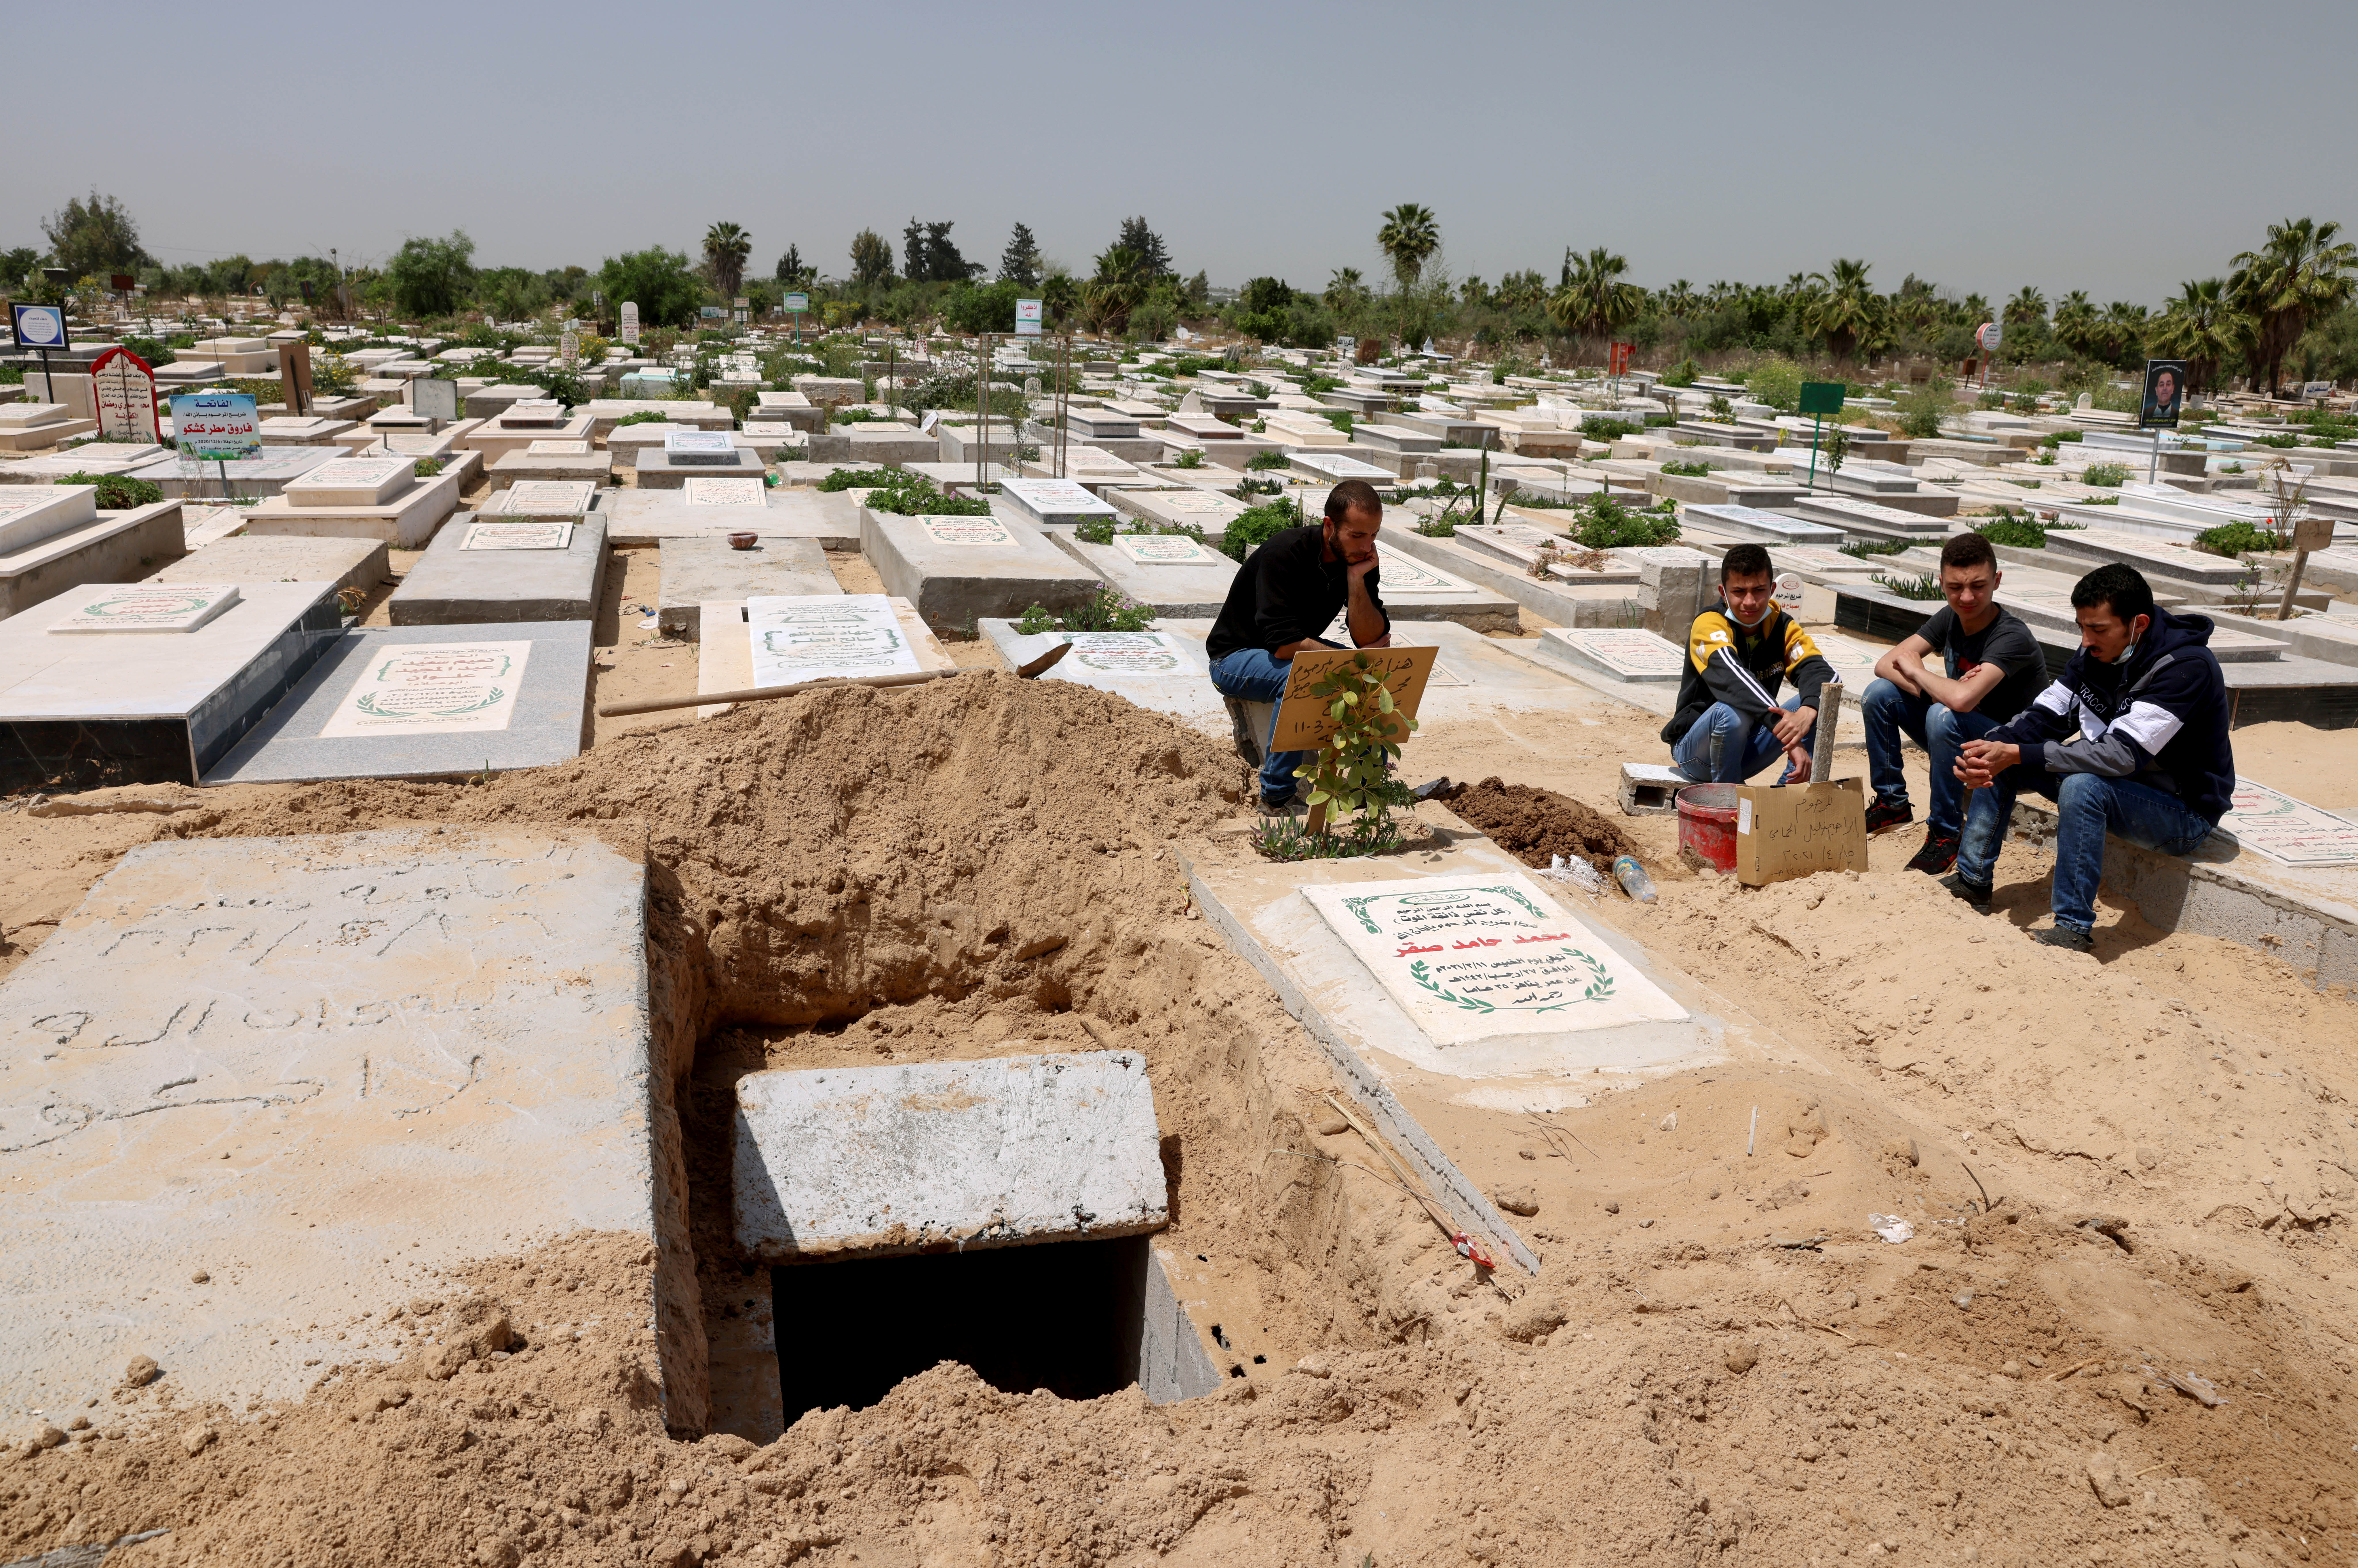 Palestinians wait to bury the body of their relative, who died after contracting the coronavirus disease (COVID-19), at a cemetery, east of Gaza City April 20, 2021. Picture taken April 20, 2021. REUTERS/Mohammed Salem